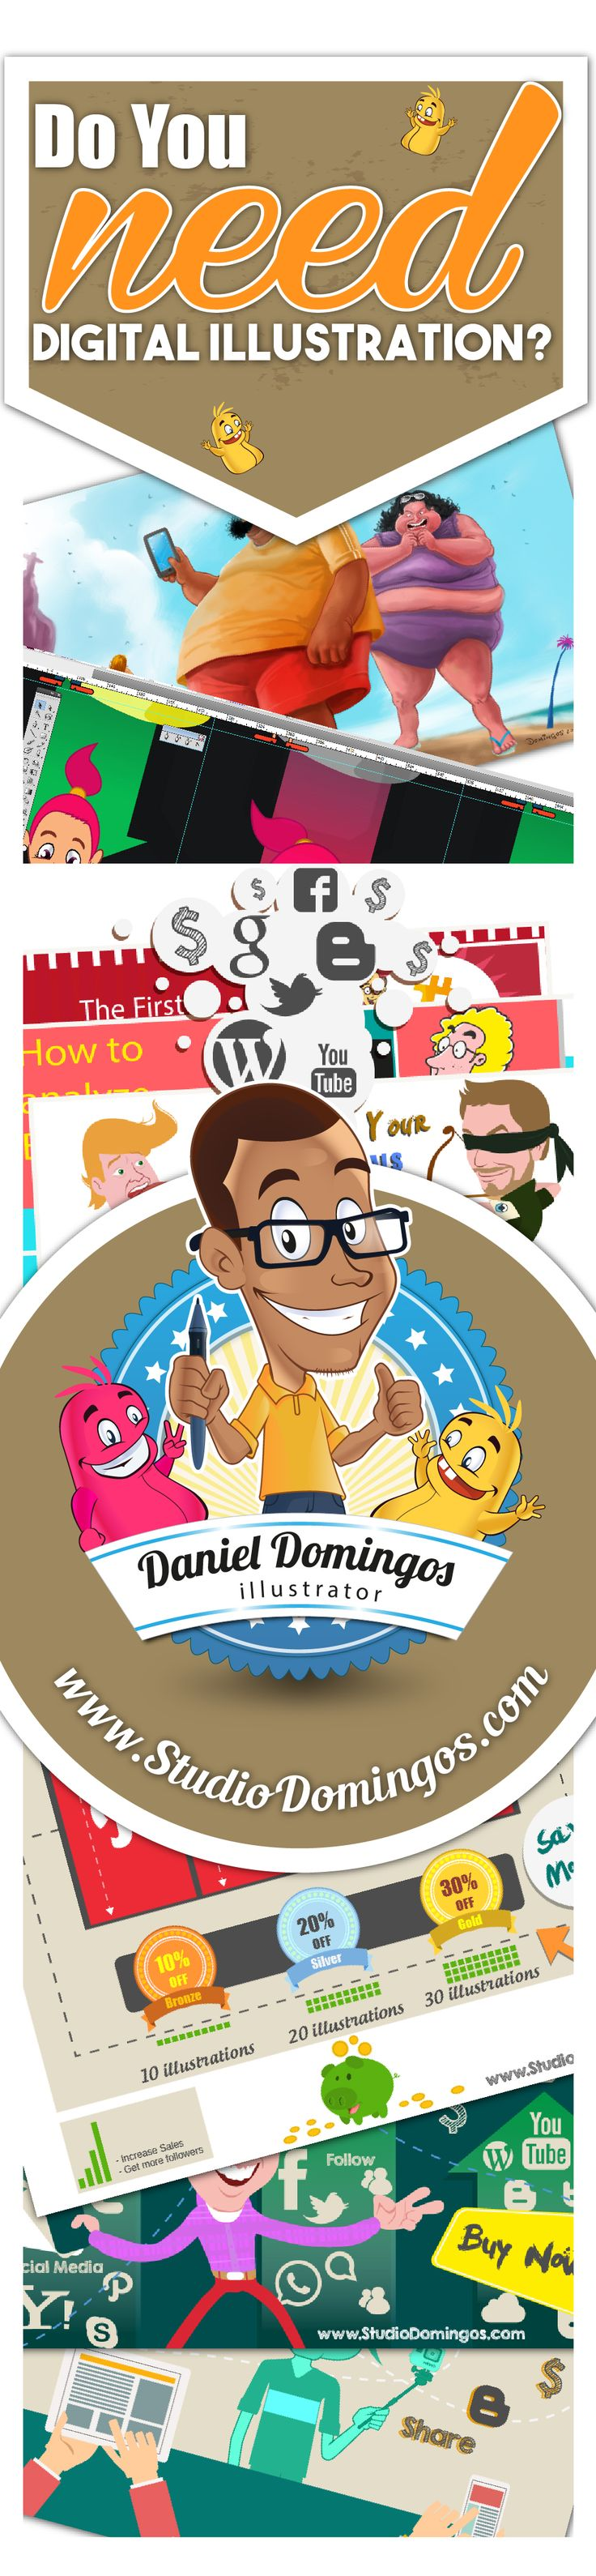 Do you need digital illustration? The Studio Domingos is the best solution!! Get in touch!